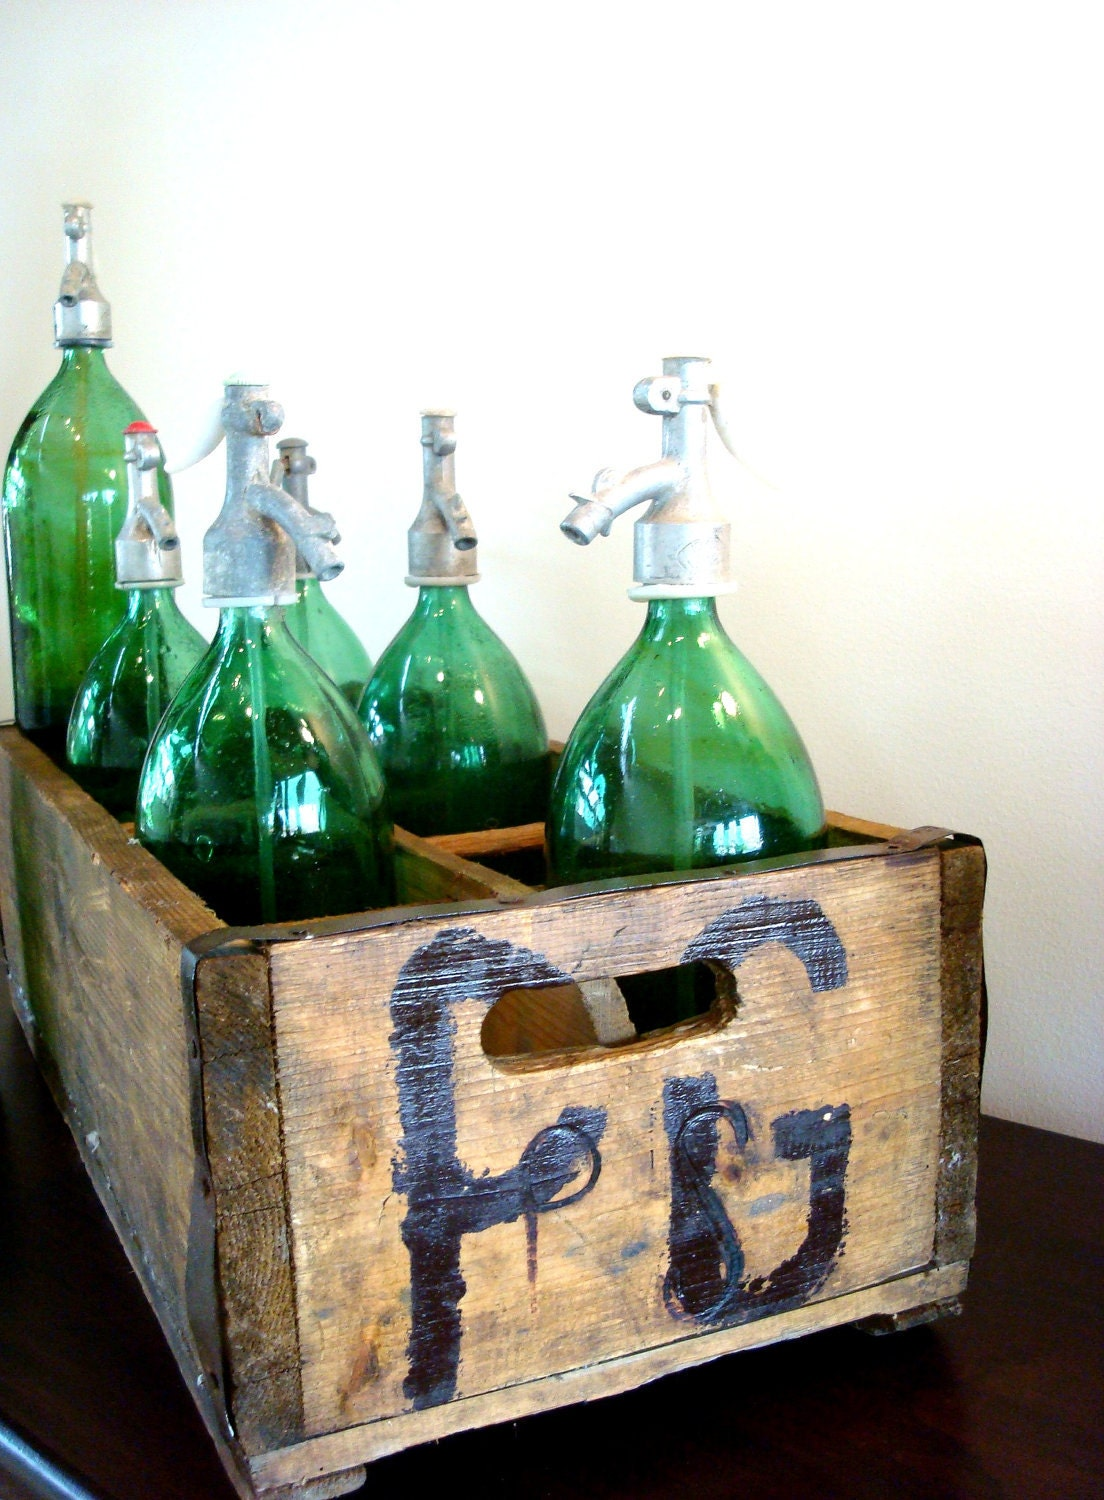 Vintage Green Seltzer Bottles purchsed in Europe, with original Spigot and straw